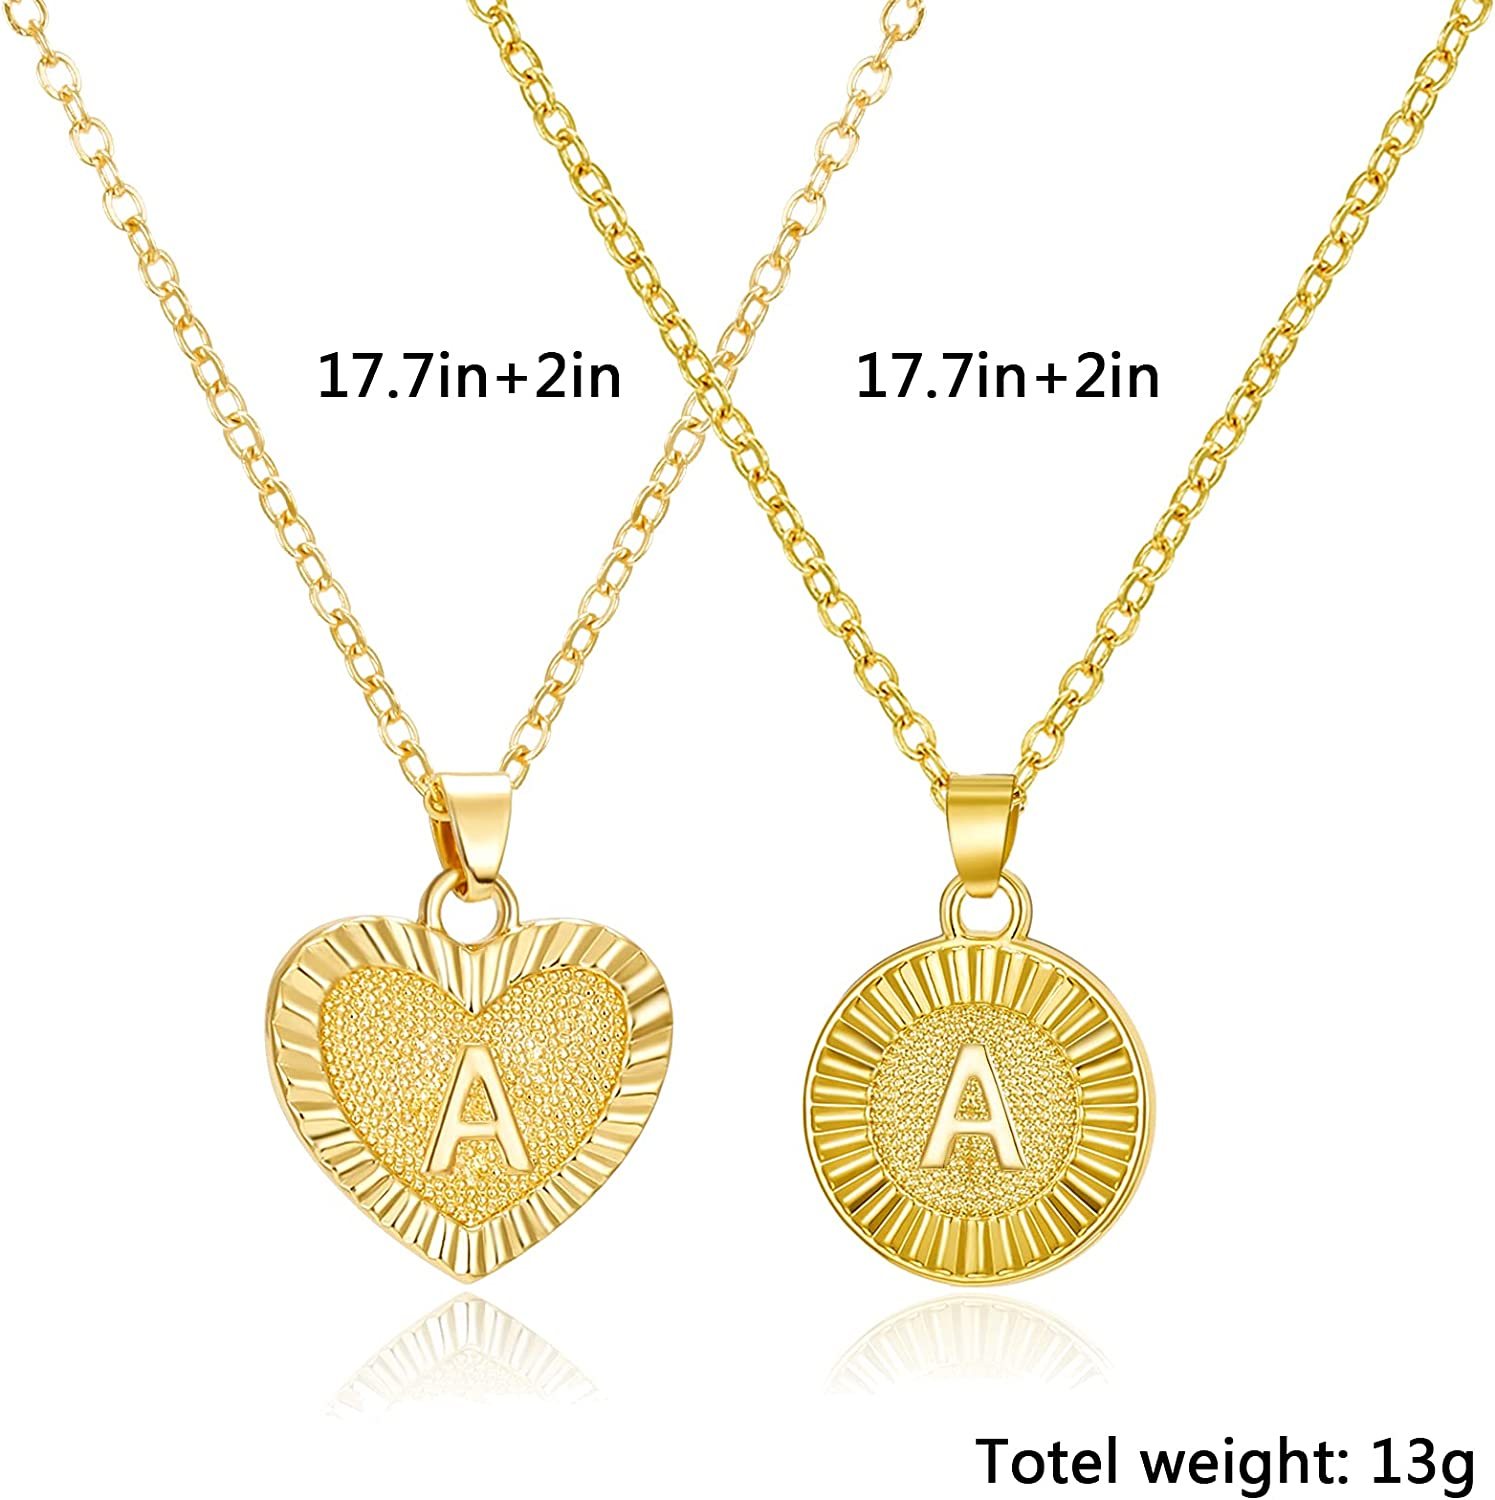 Heart & Round Initial Necklaces 14K Gold Plated Letter Necklace A-Z Layered Gold Chain Necklace Pendant Choker Necklaces for Women Girls